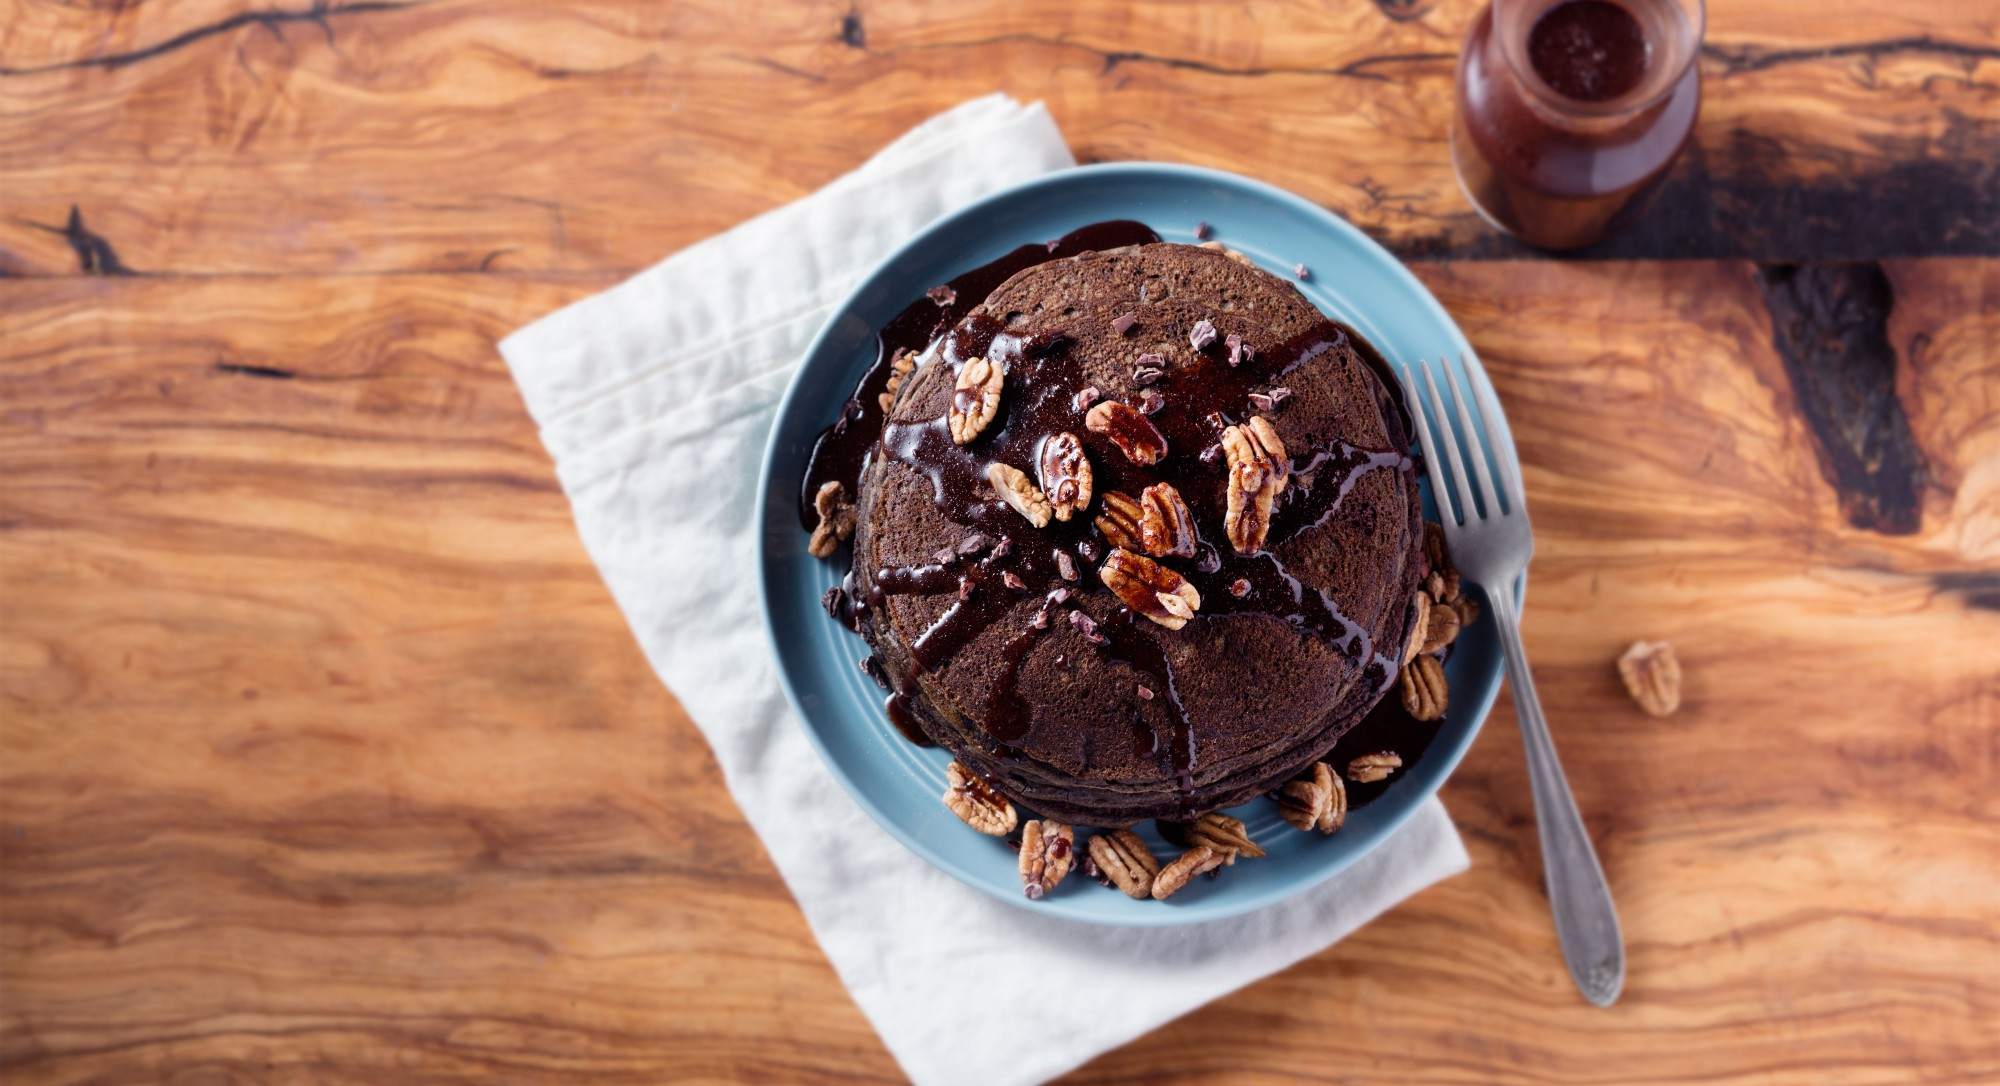 Chocoholics, You Need These Decadent Pancakes in Your Life